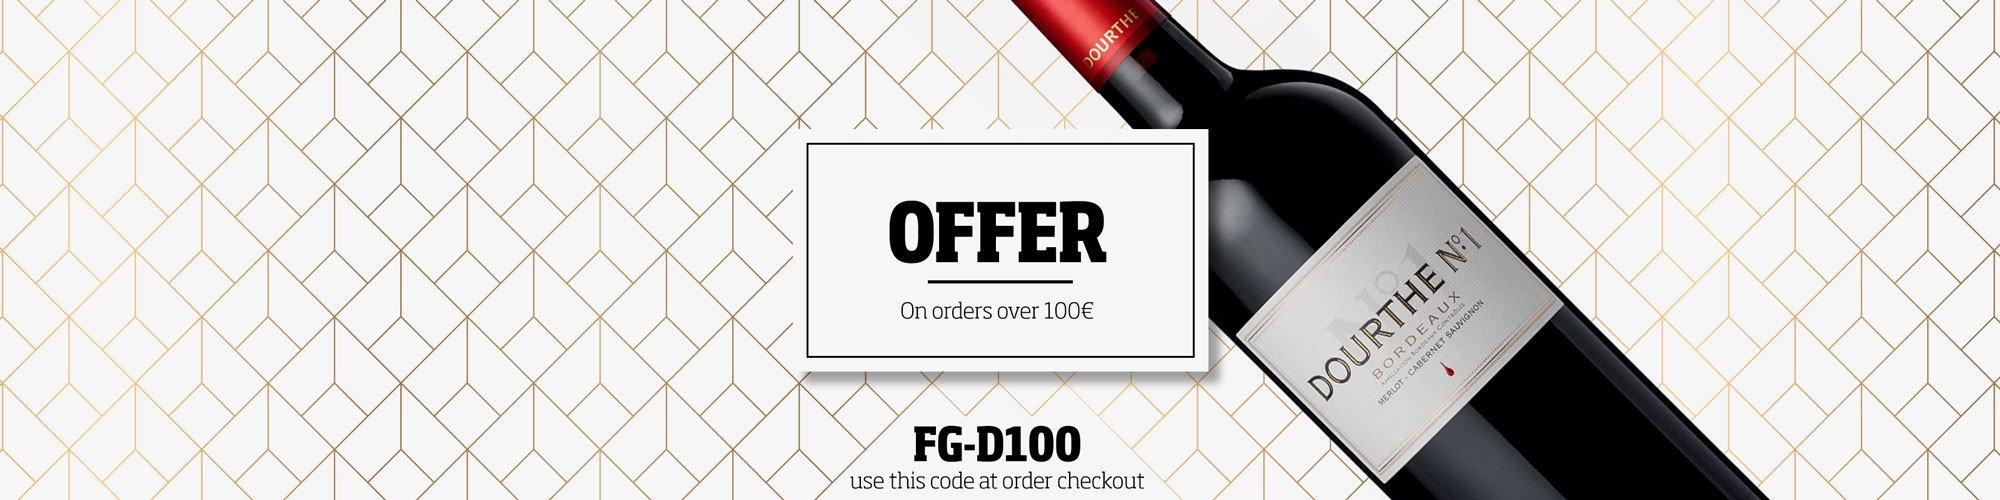 Offer of a bottle of Dourthe Nº1 wine for purchases over €100. Don't miss this opportunity!